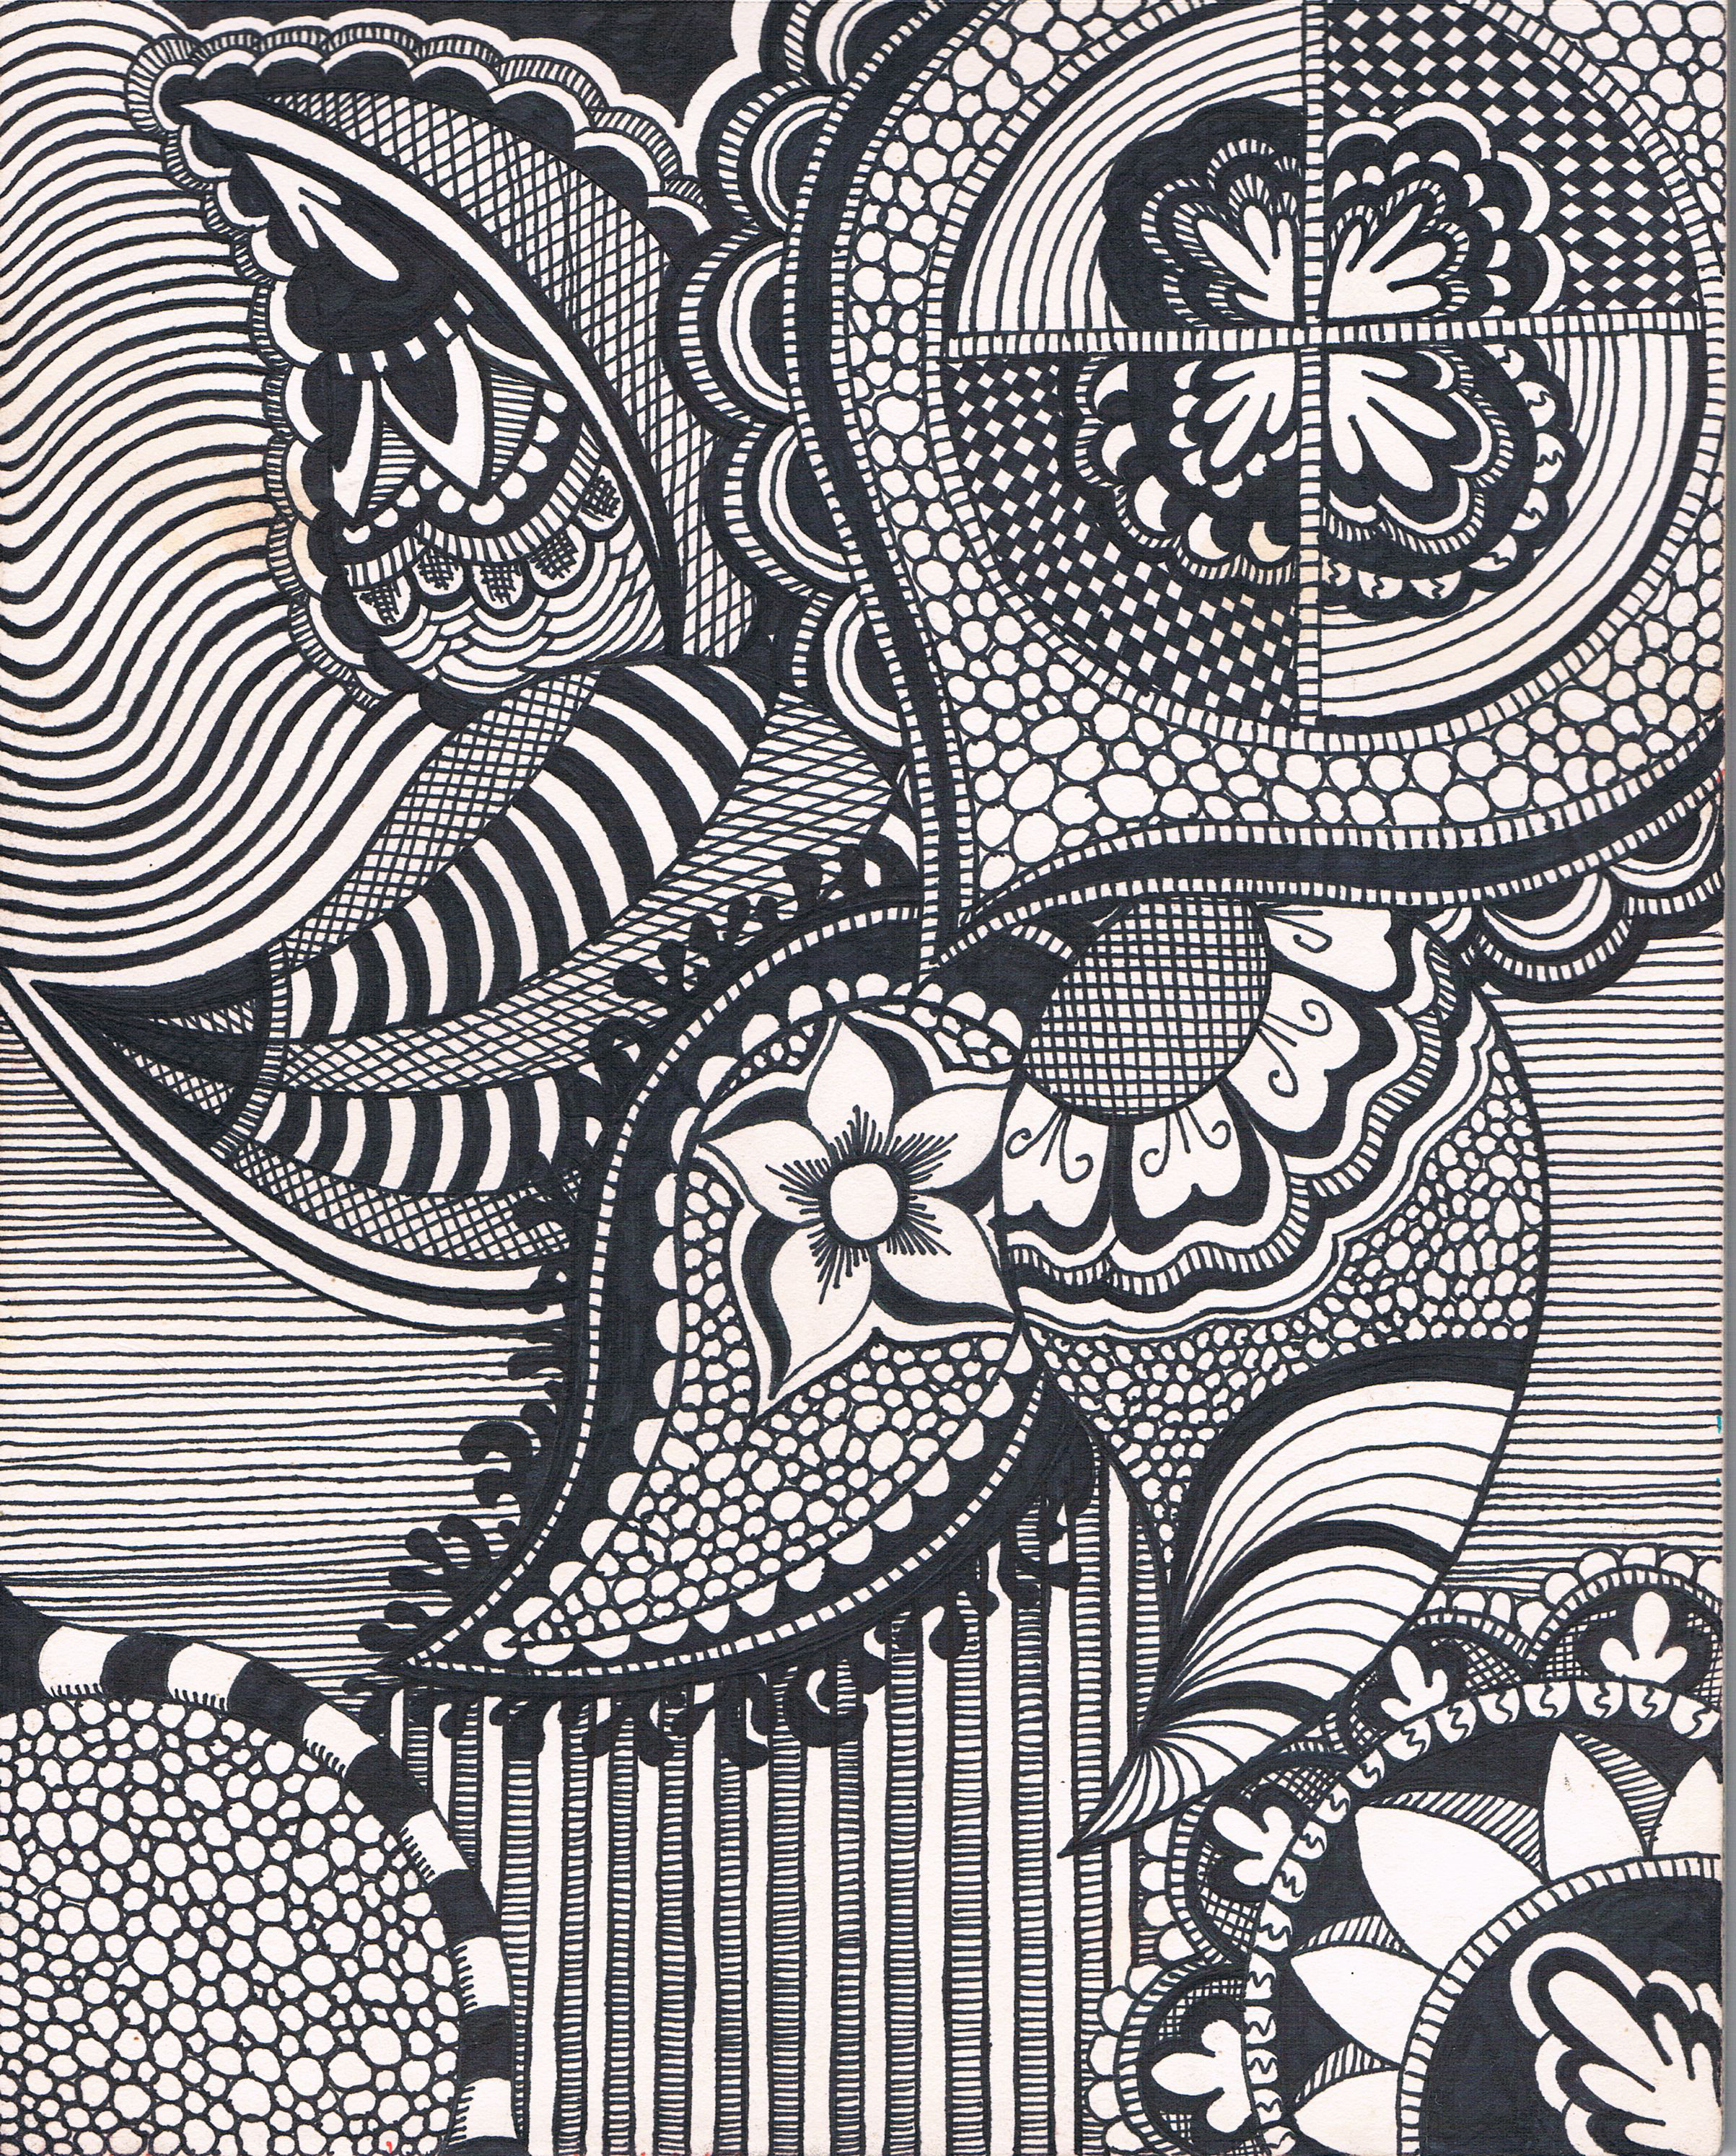 Drawn triipy abstract Best Pinterest Trippy  Expressions